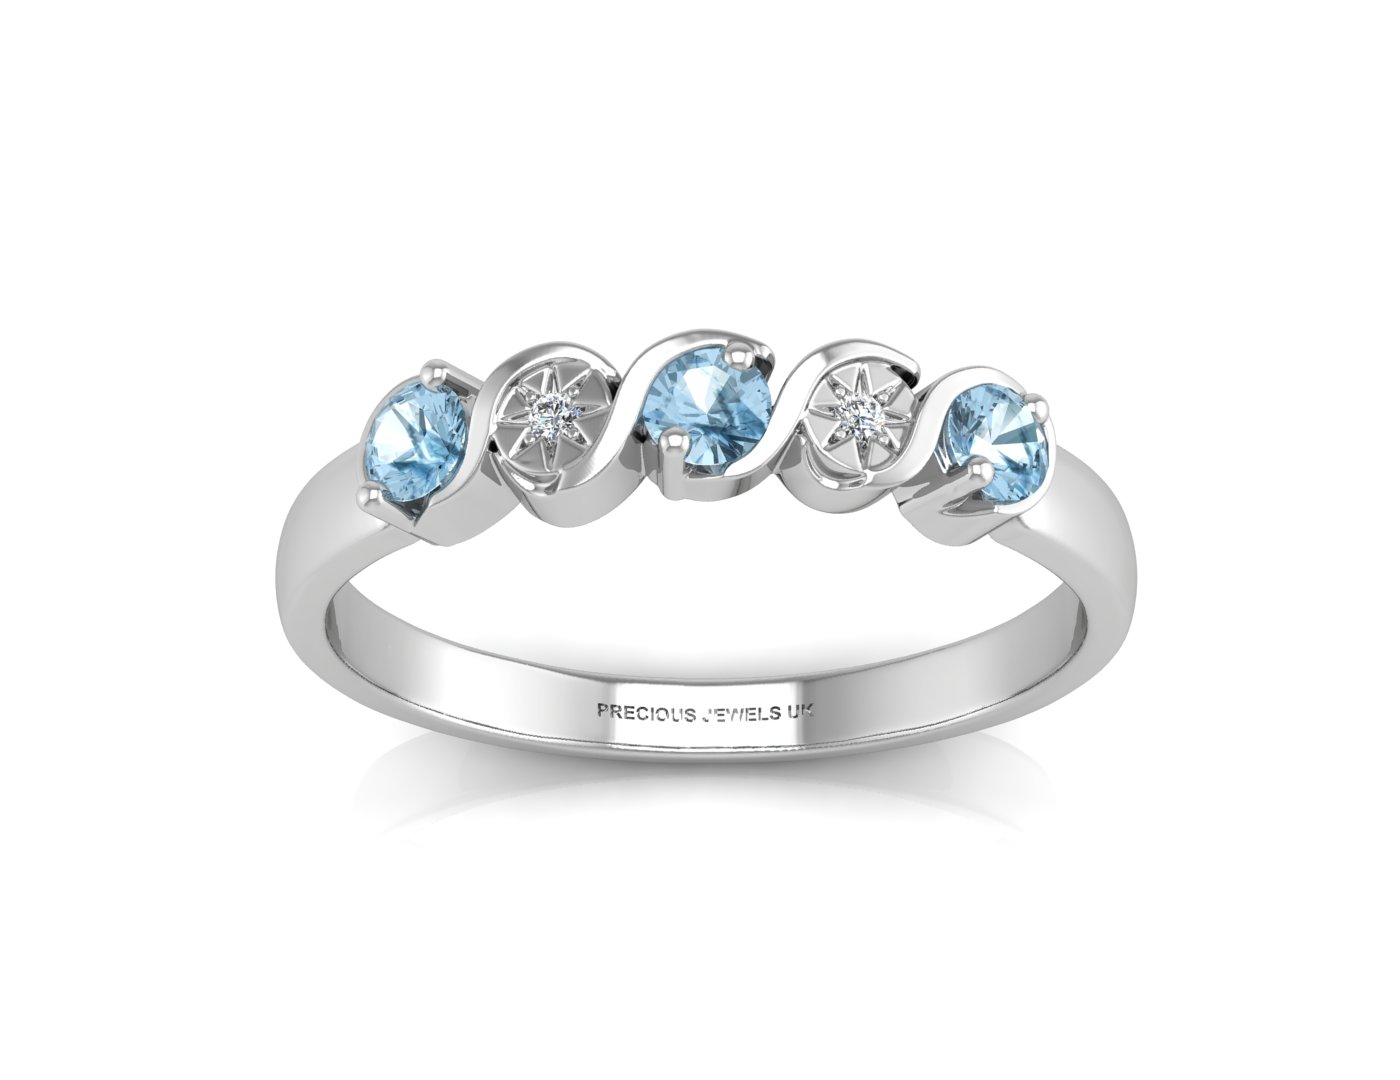 Lot 49 - 9ct White Gold Semi Eternity Diamond And Blue Topaz Ring 0.01 Carats